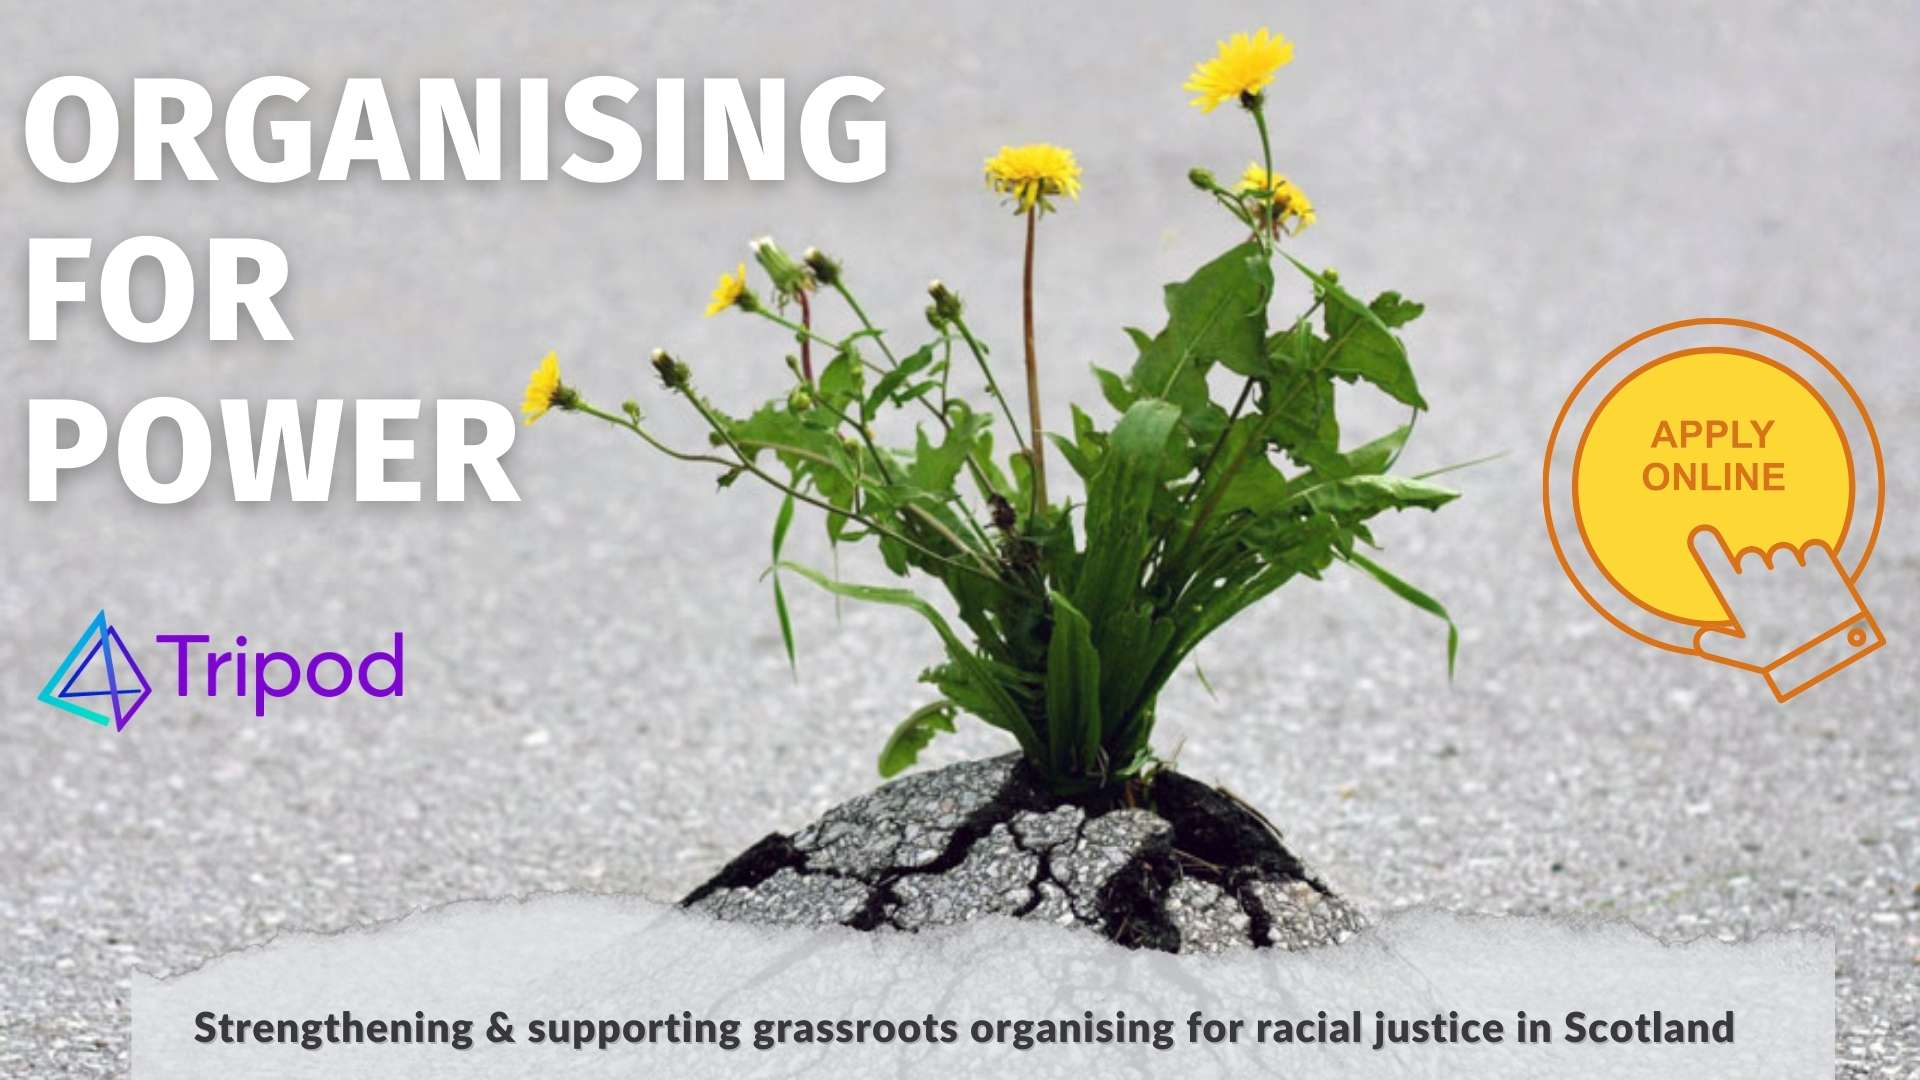 Poster for Organising for Power: click here to apply online